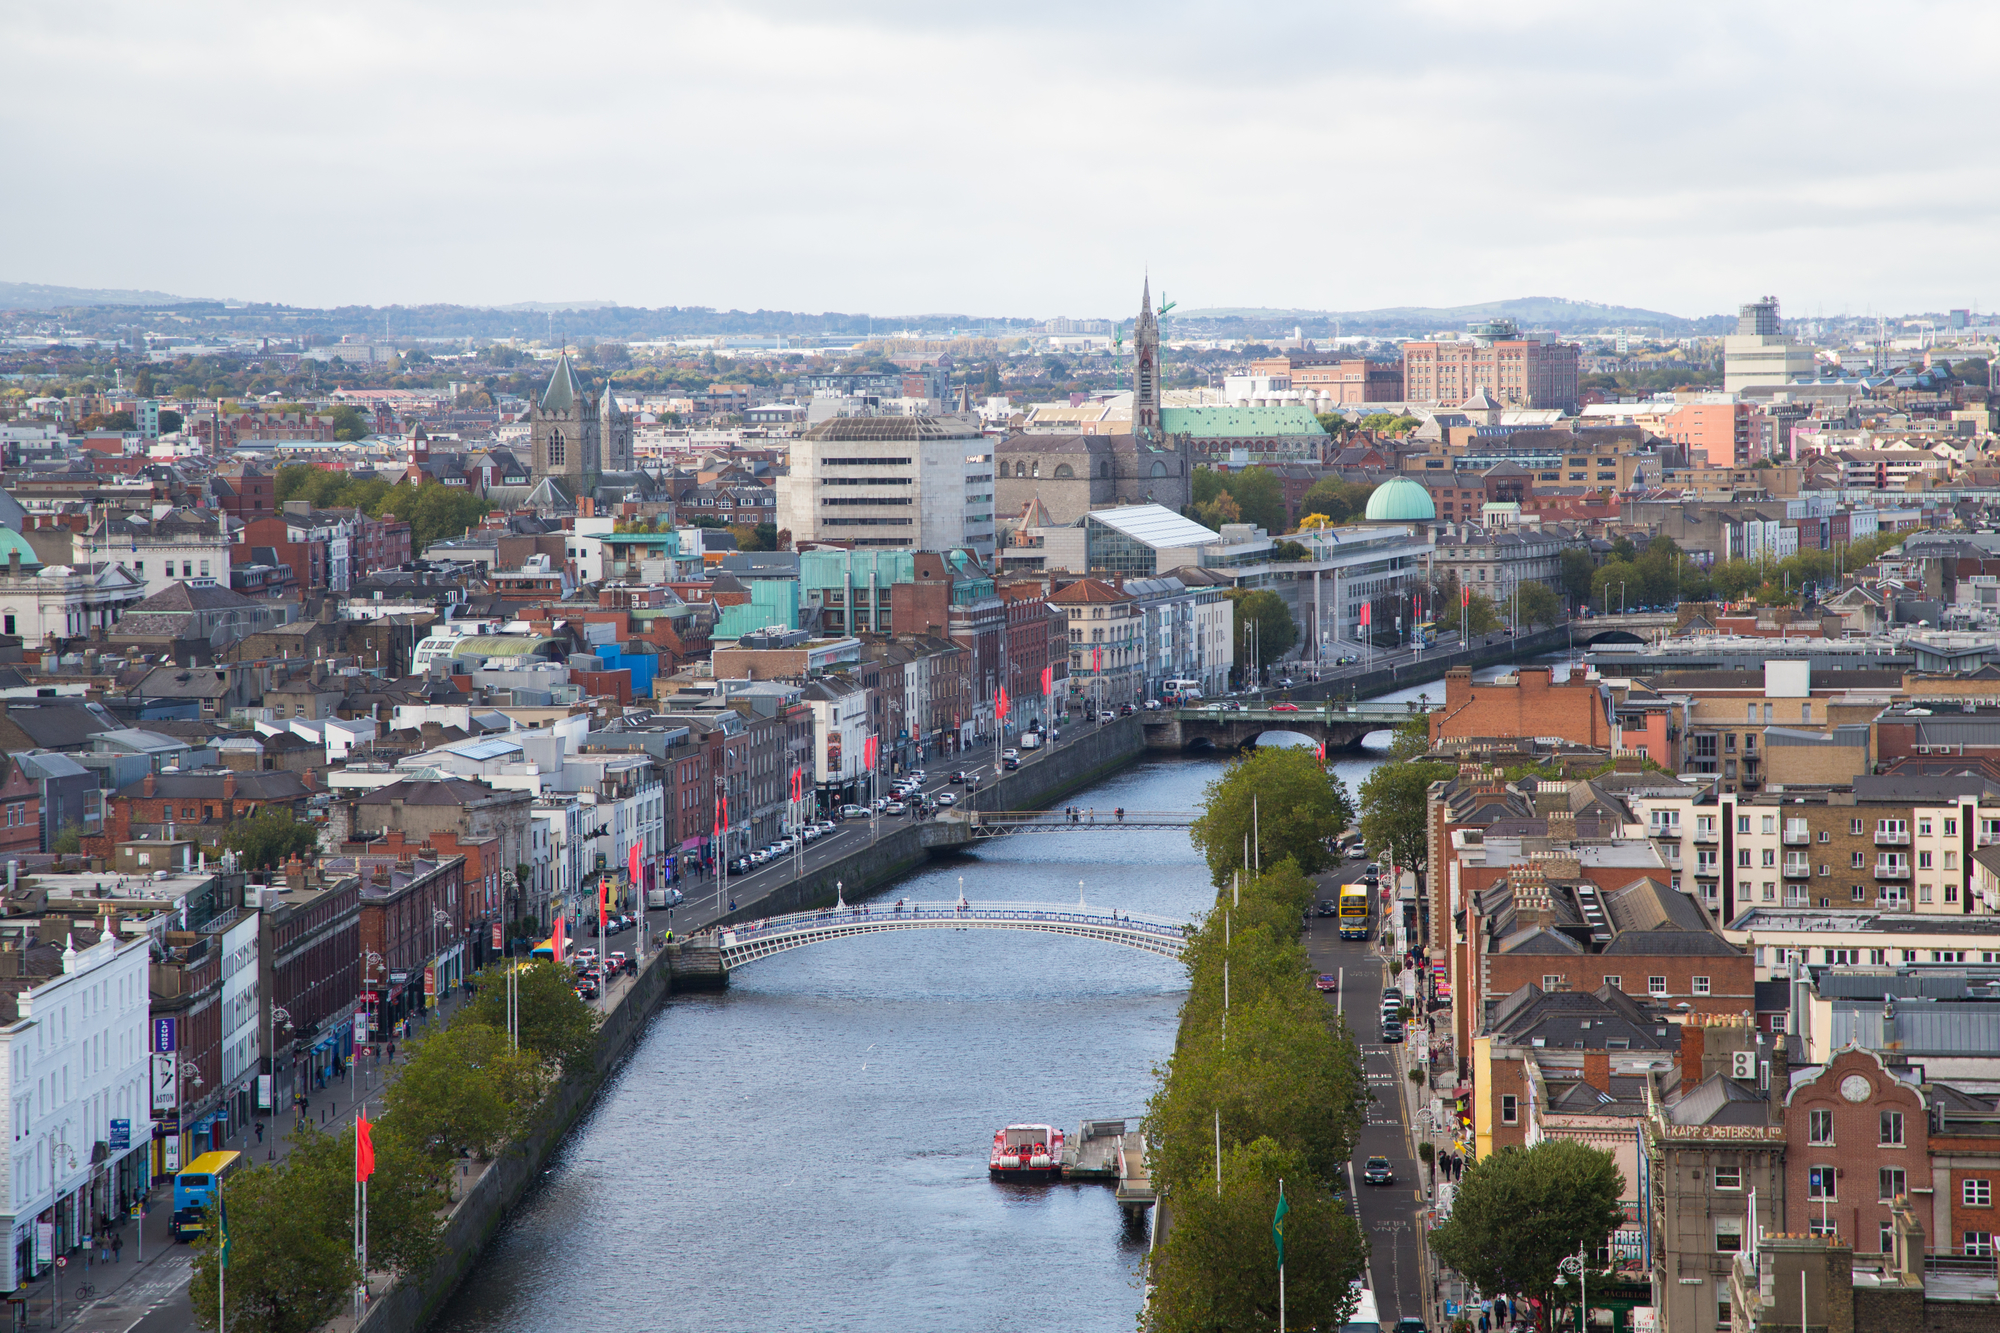 image asset - Bankers to move hundreds of staff to Dublin, Frankfurt and Luxembourg on Brexit.